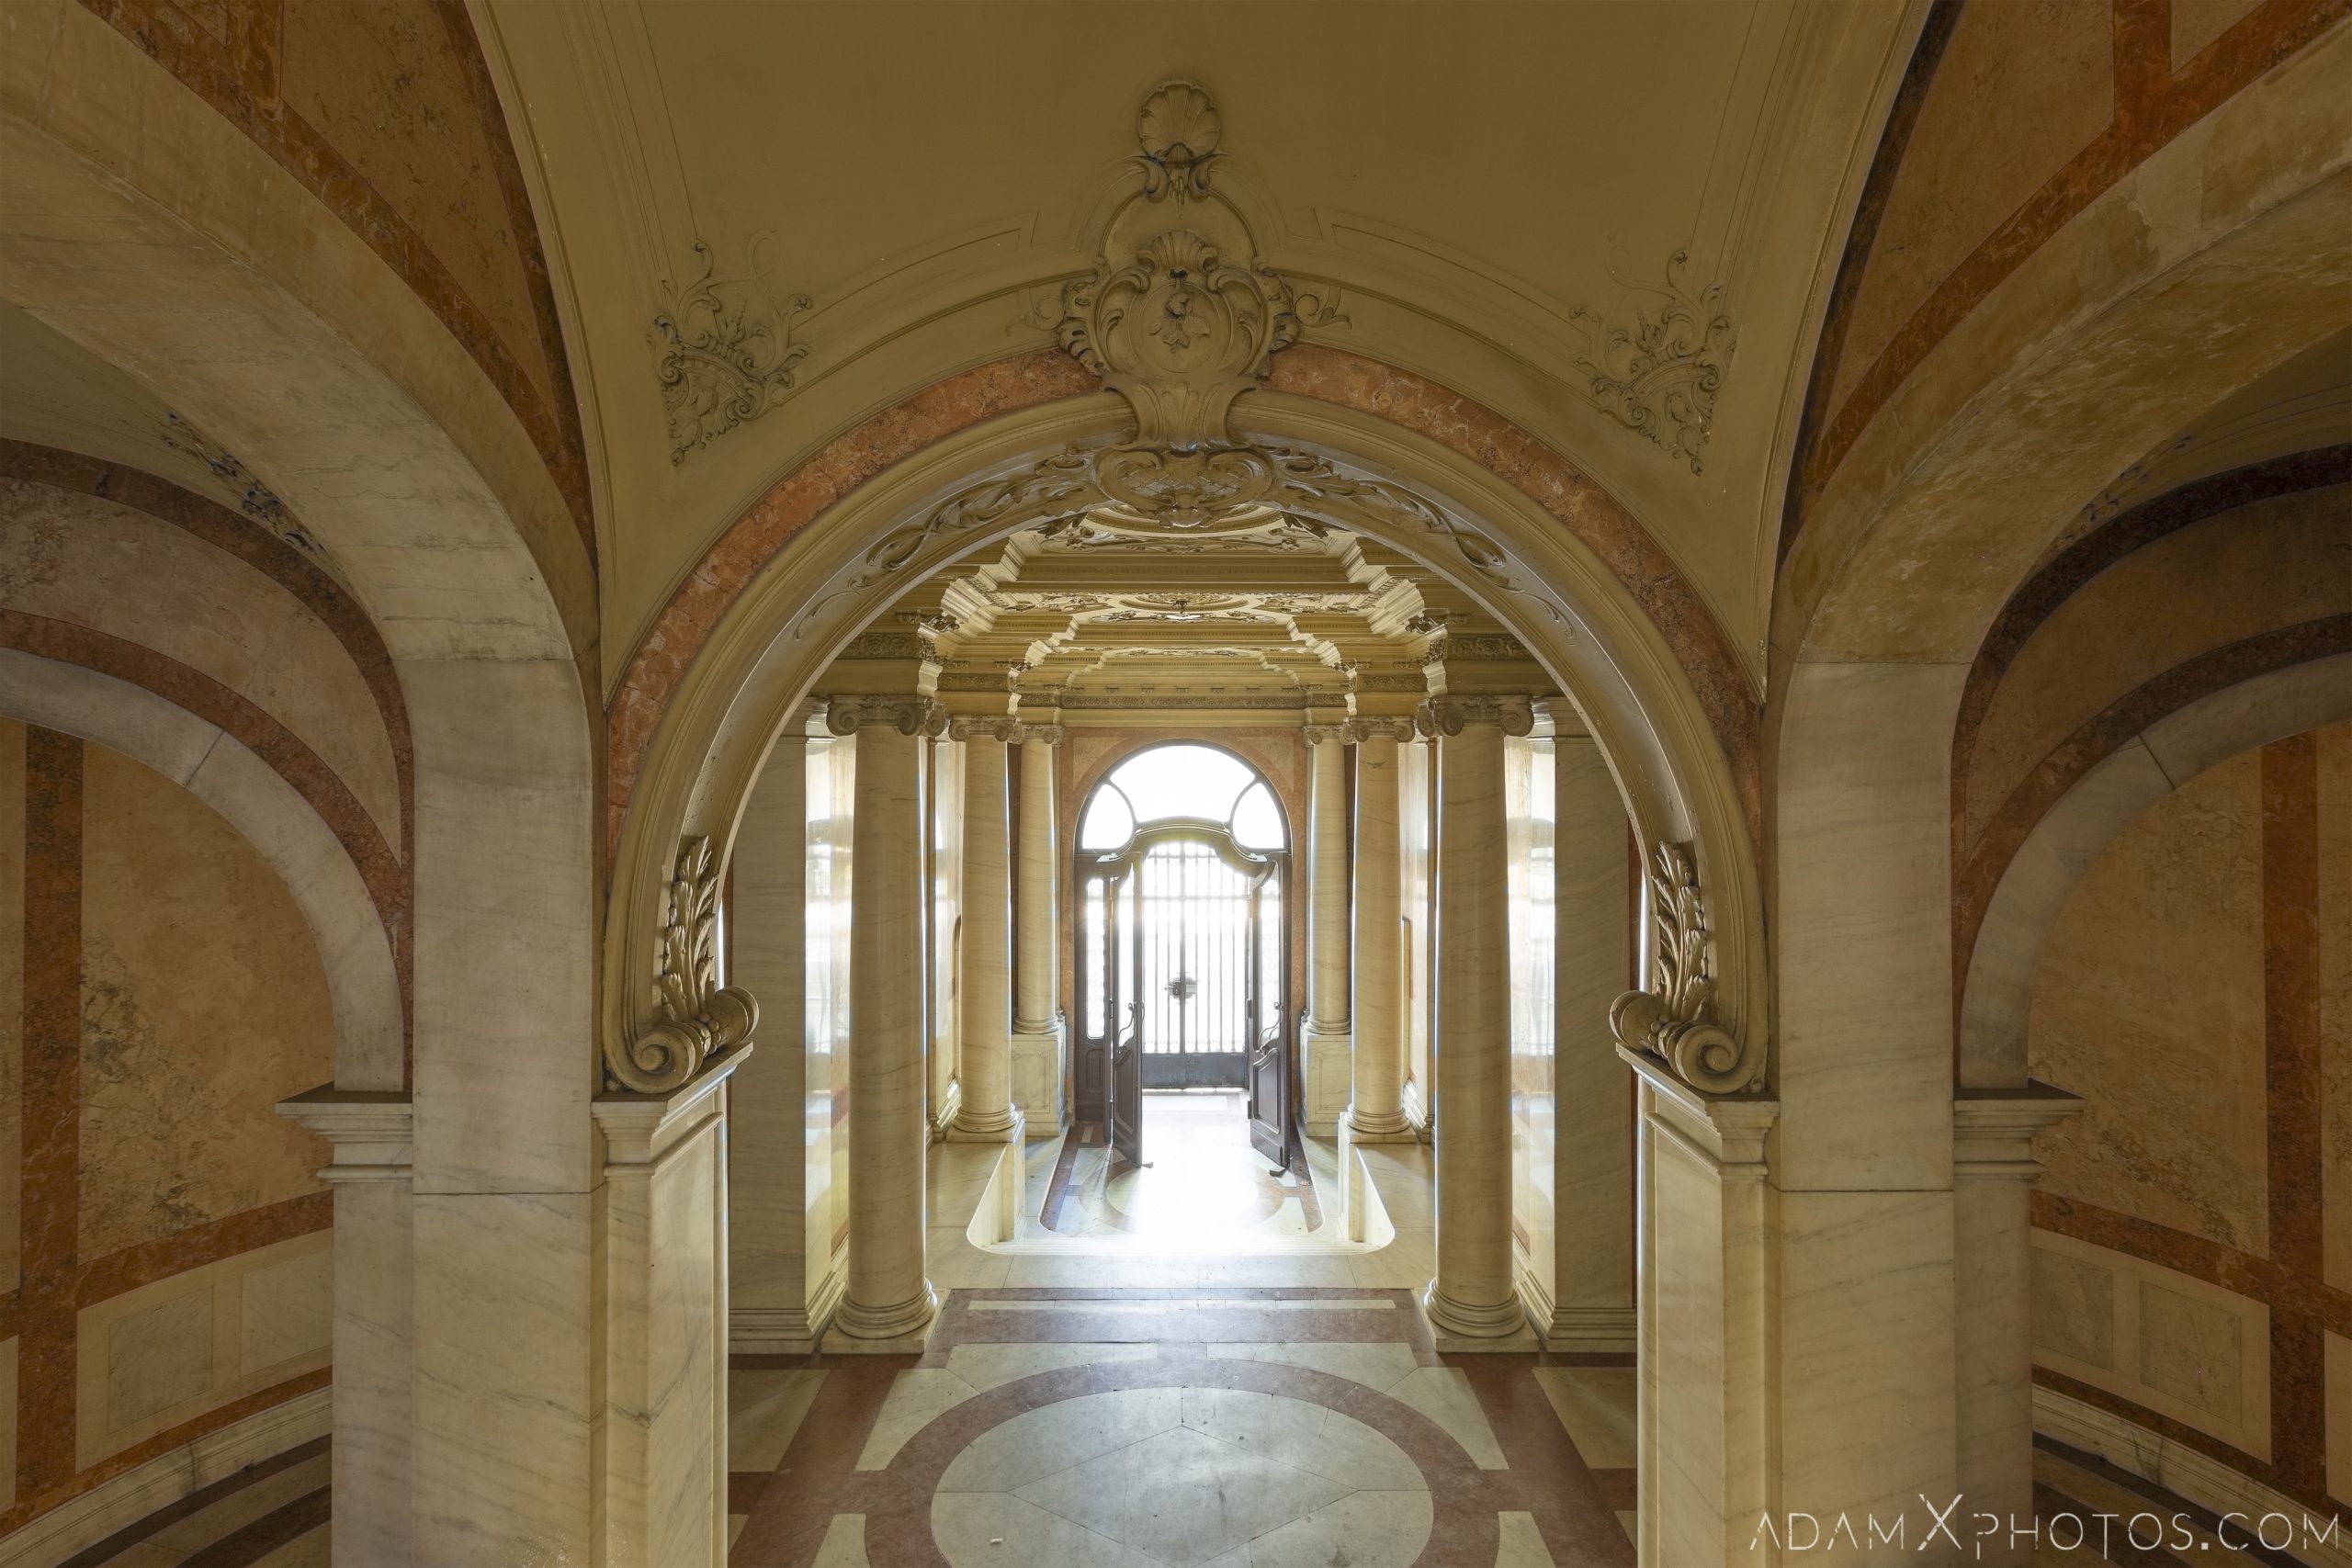 Entrance lobby foyer reception hall front door marble arches Adria Palace Budapest Hungary Adam X Urbex Urban Exploration Access 2018 Blade Runner 2049 Abandoned decay ruins lost forgotten derelict location creepy haunting eerie security ornate grand neo baroque